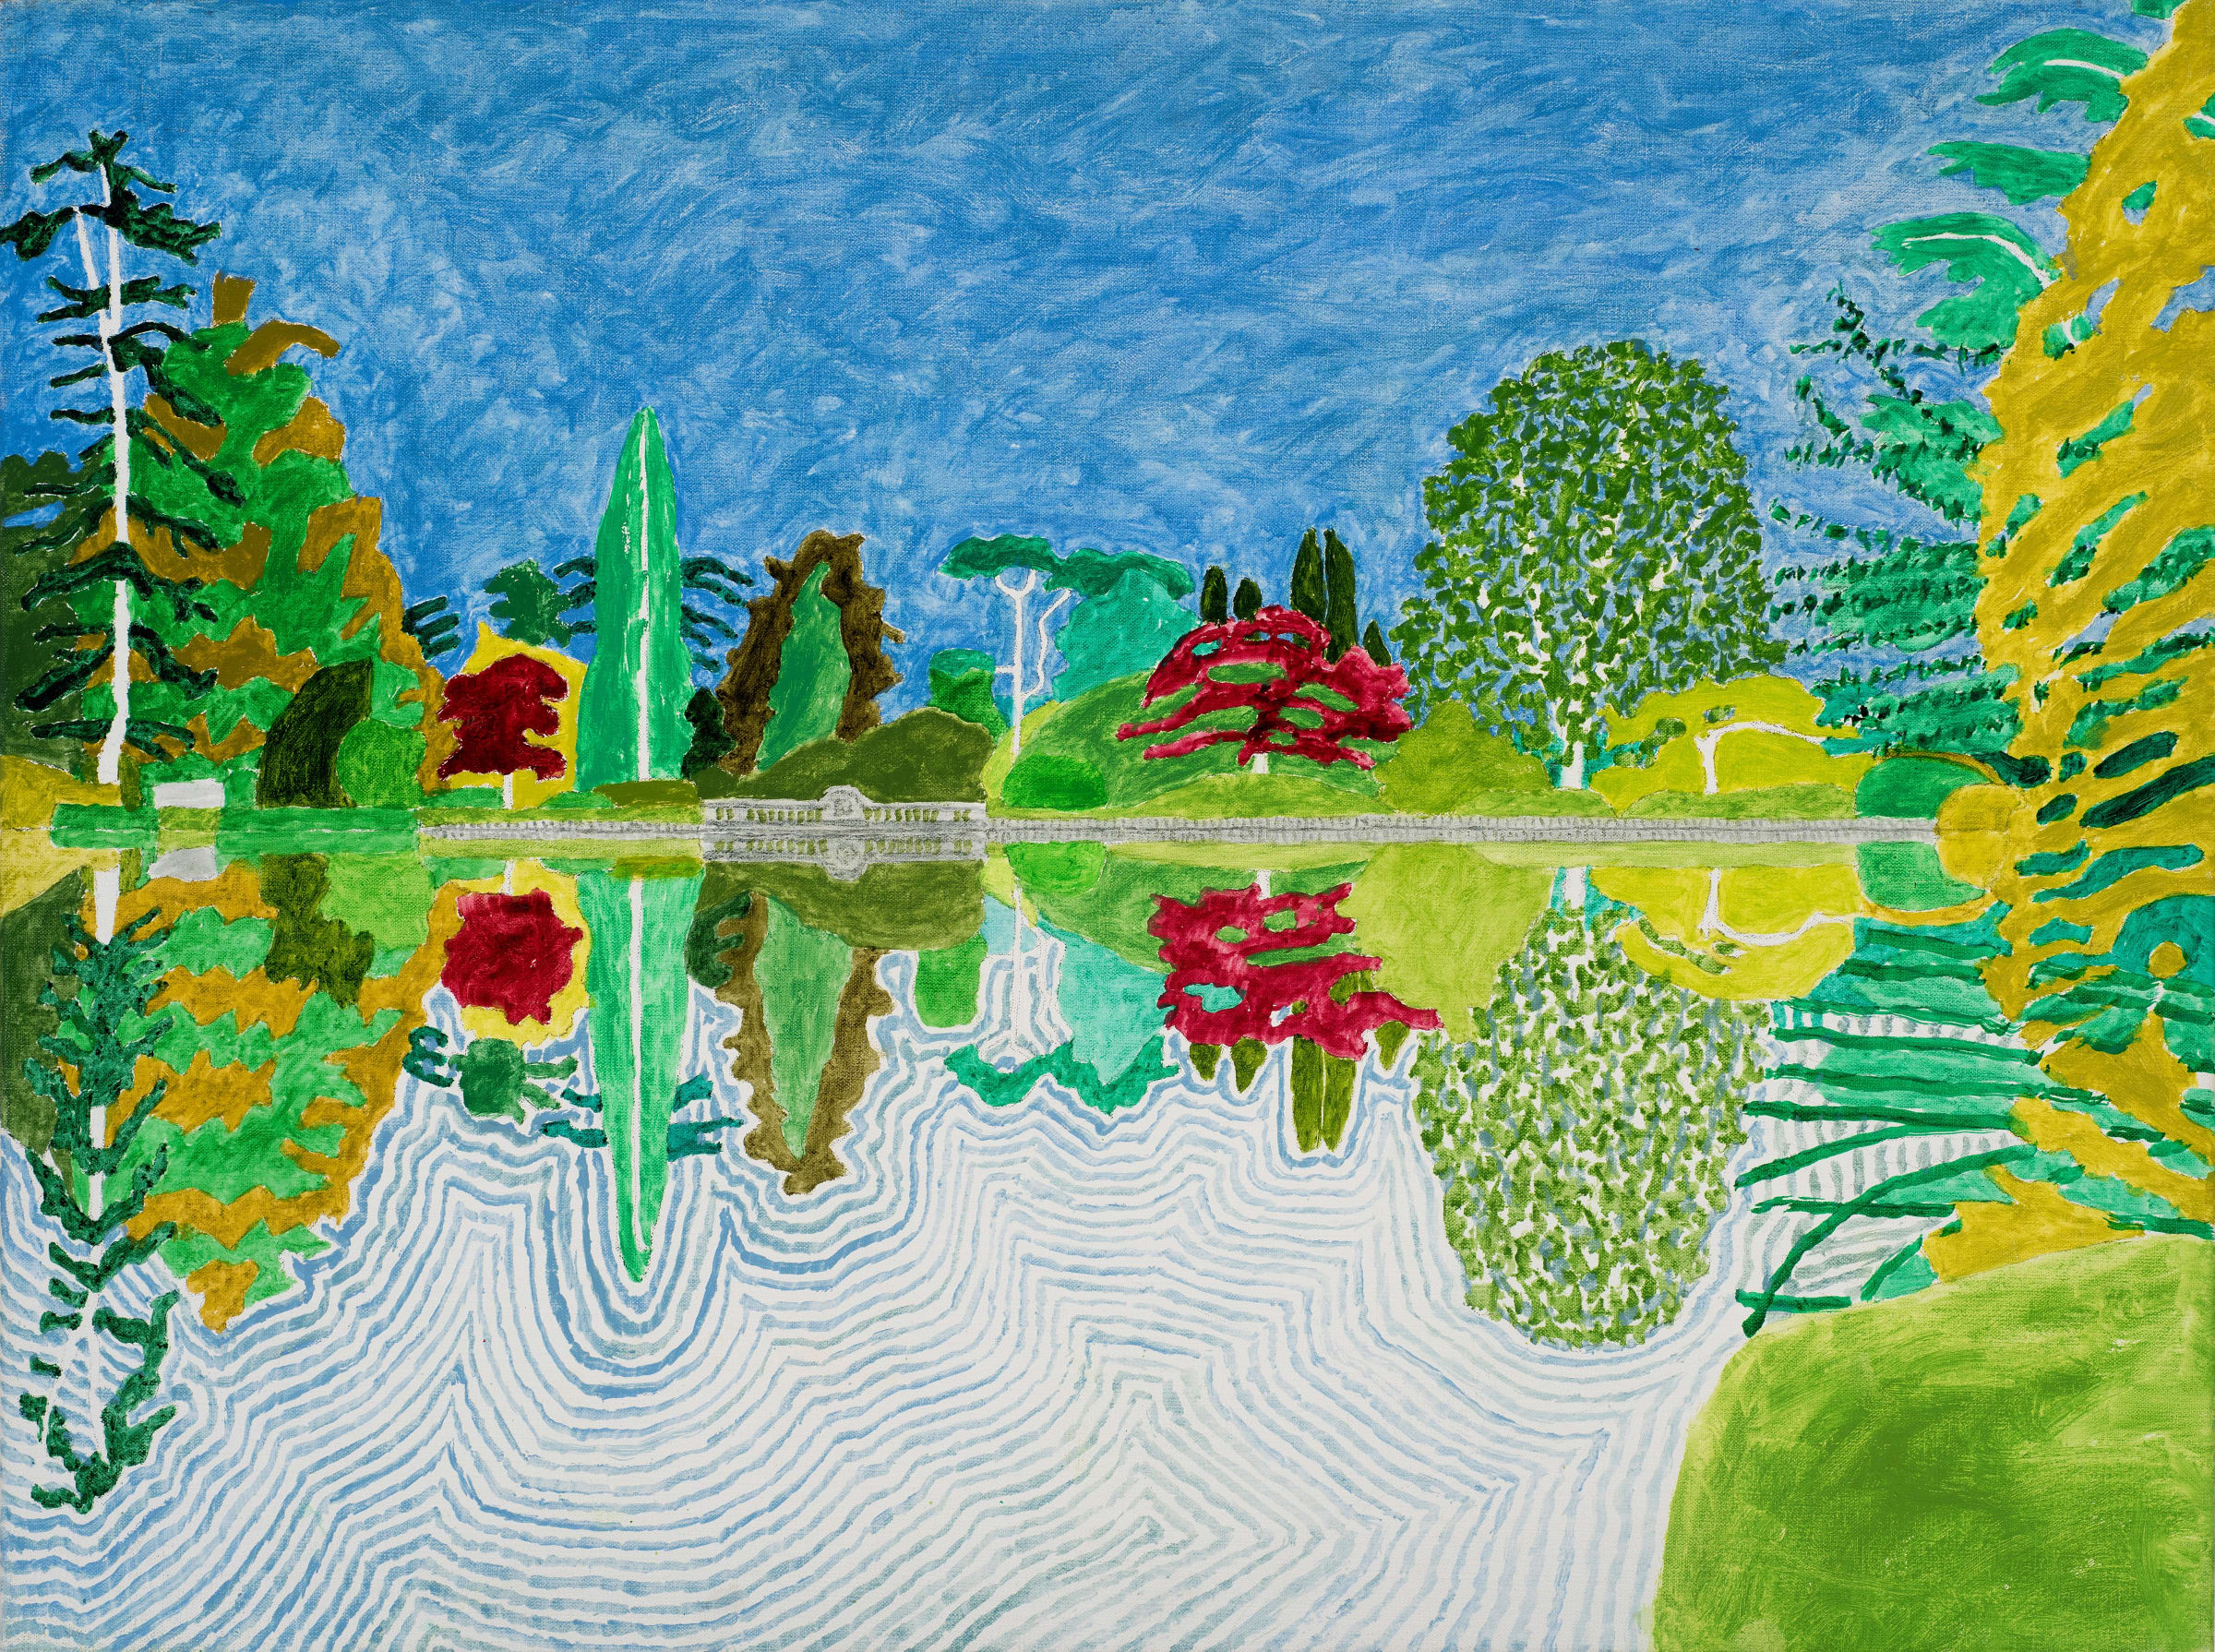 """<span class=""""link fancybox-details-link""""><a href=""""/exhibitions/12/works/image280/"""">View Detail Page</a></span><p><strong>Adrian Berg RA (1929-2011)</strong></p><p>First Lake, Sheffield Park Garden, Sussex Weald, 10th & 11th September</p><p>2002, oil on canvas, 63.5 x 81cm</p>"""